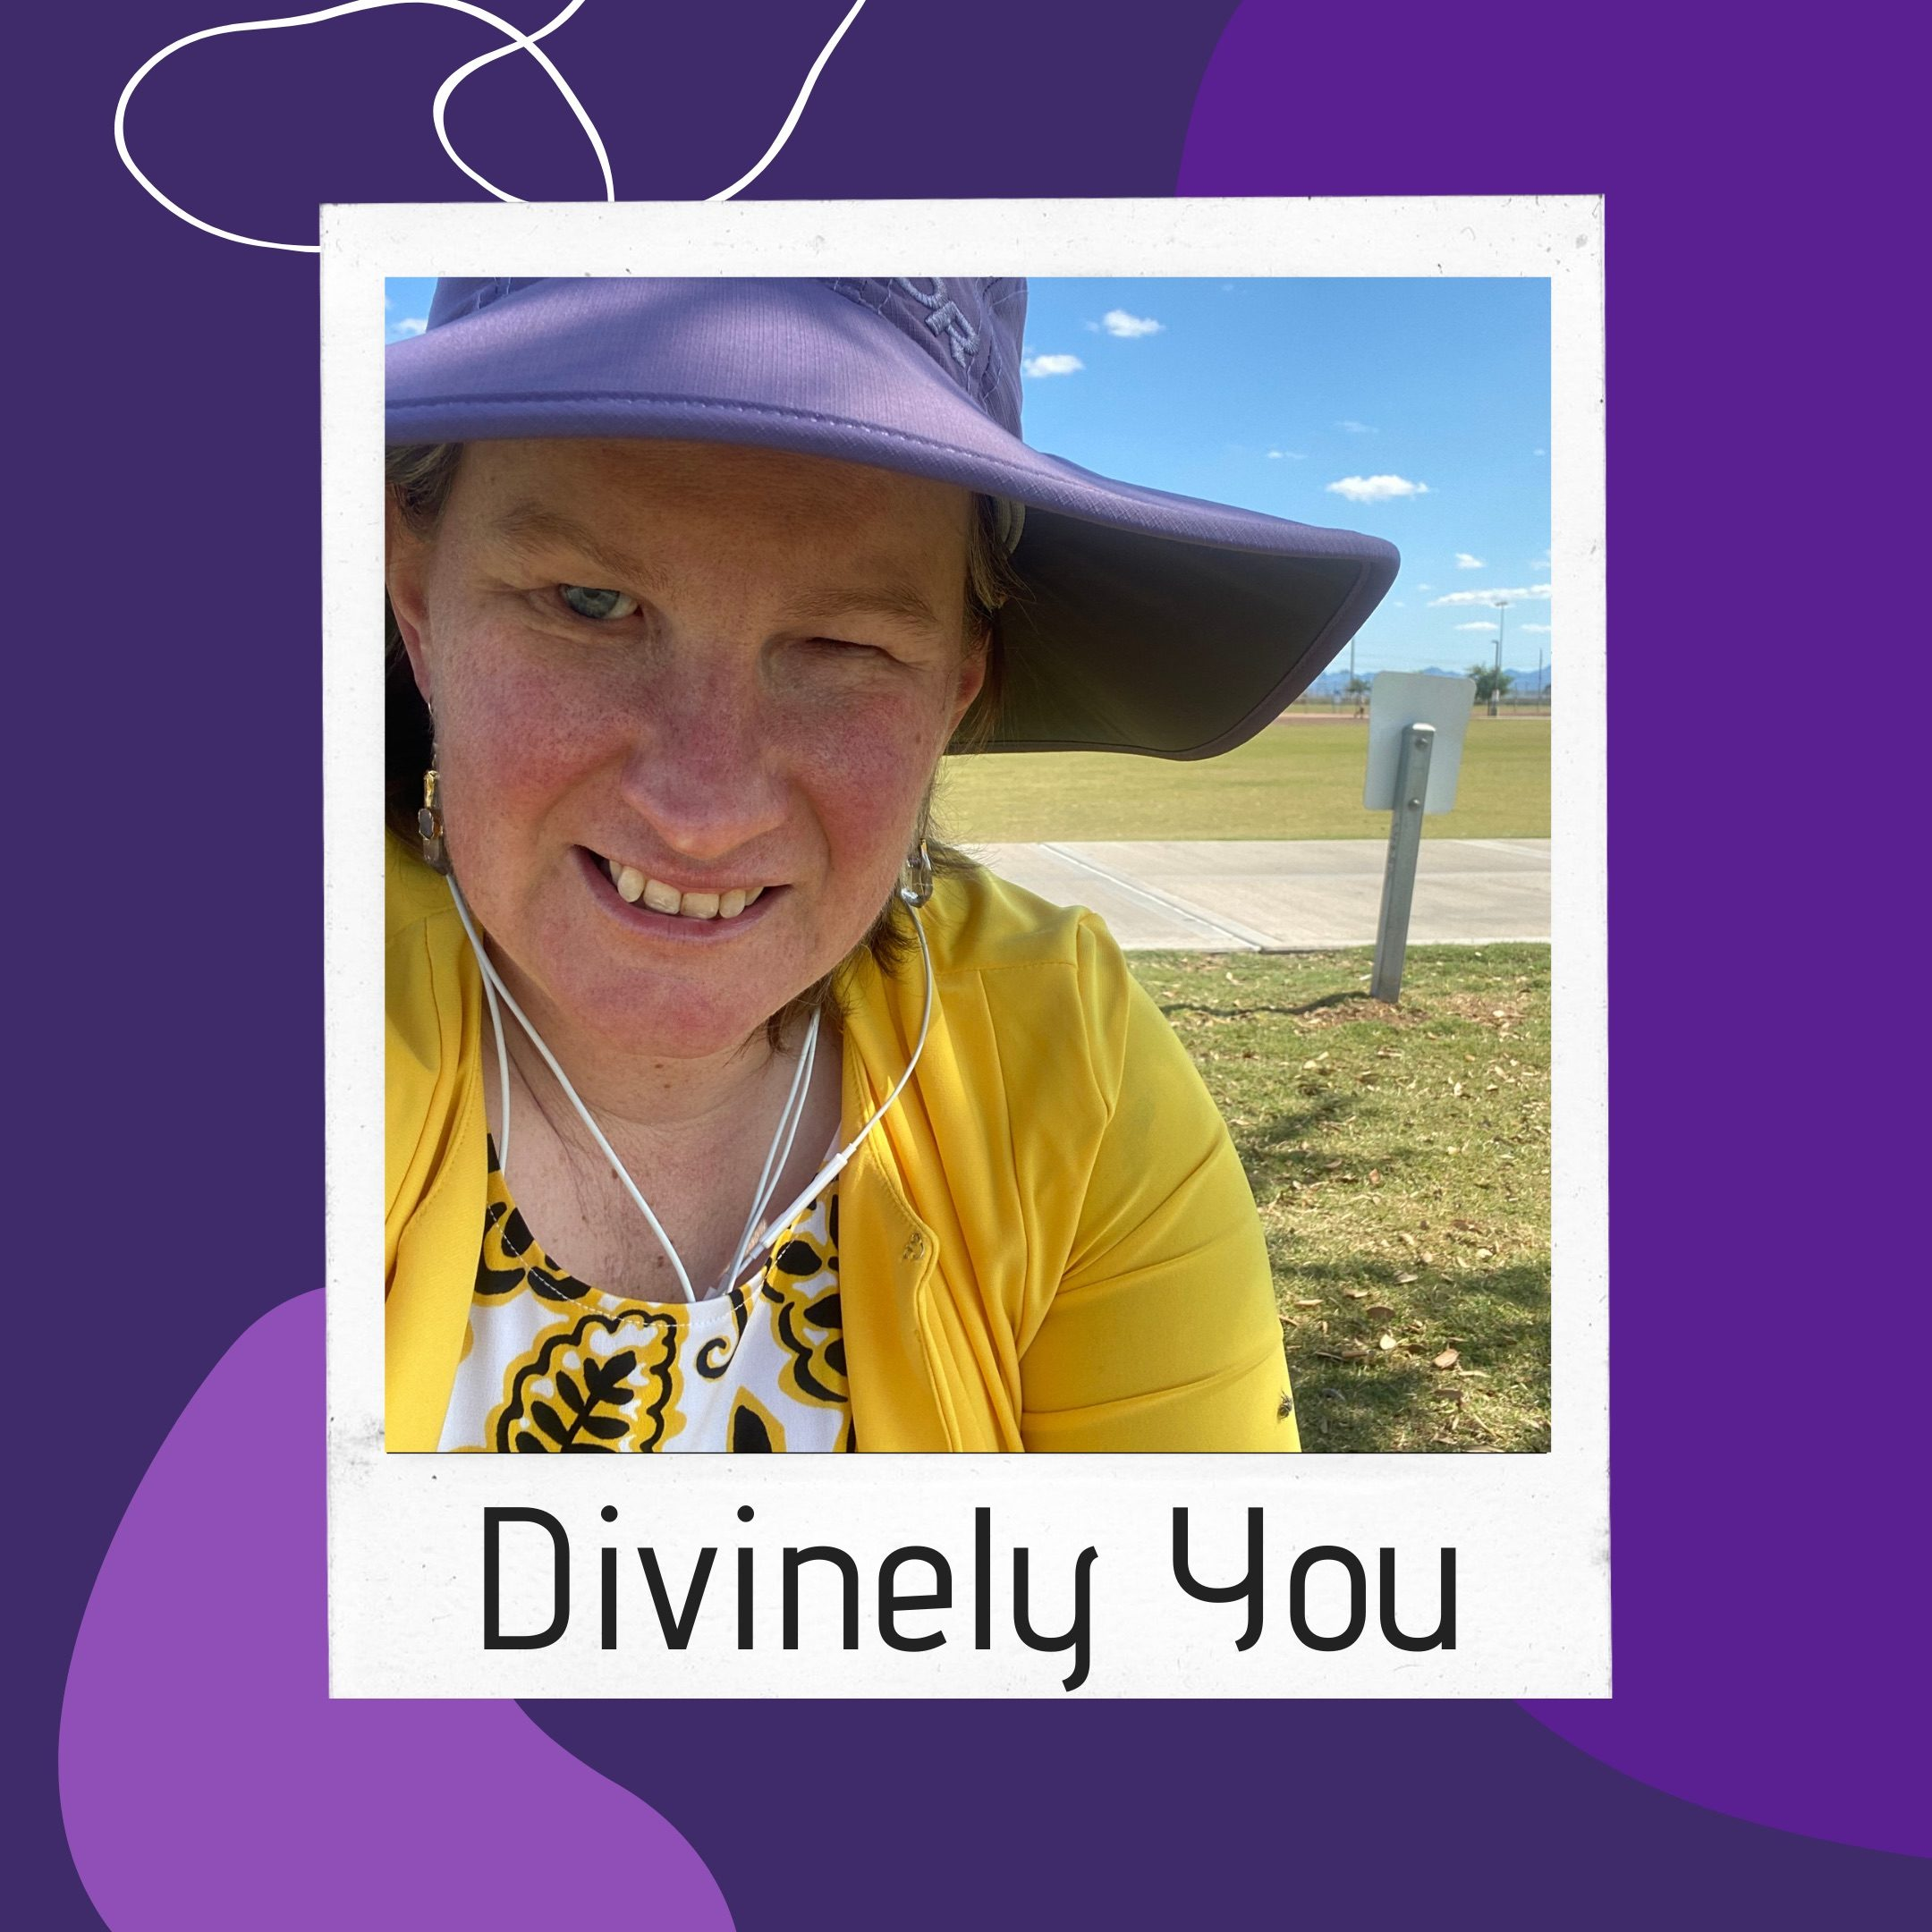 Divinely You